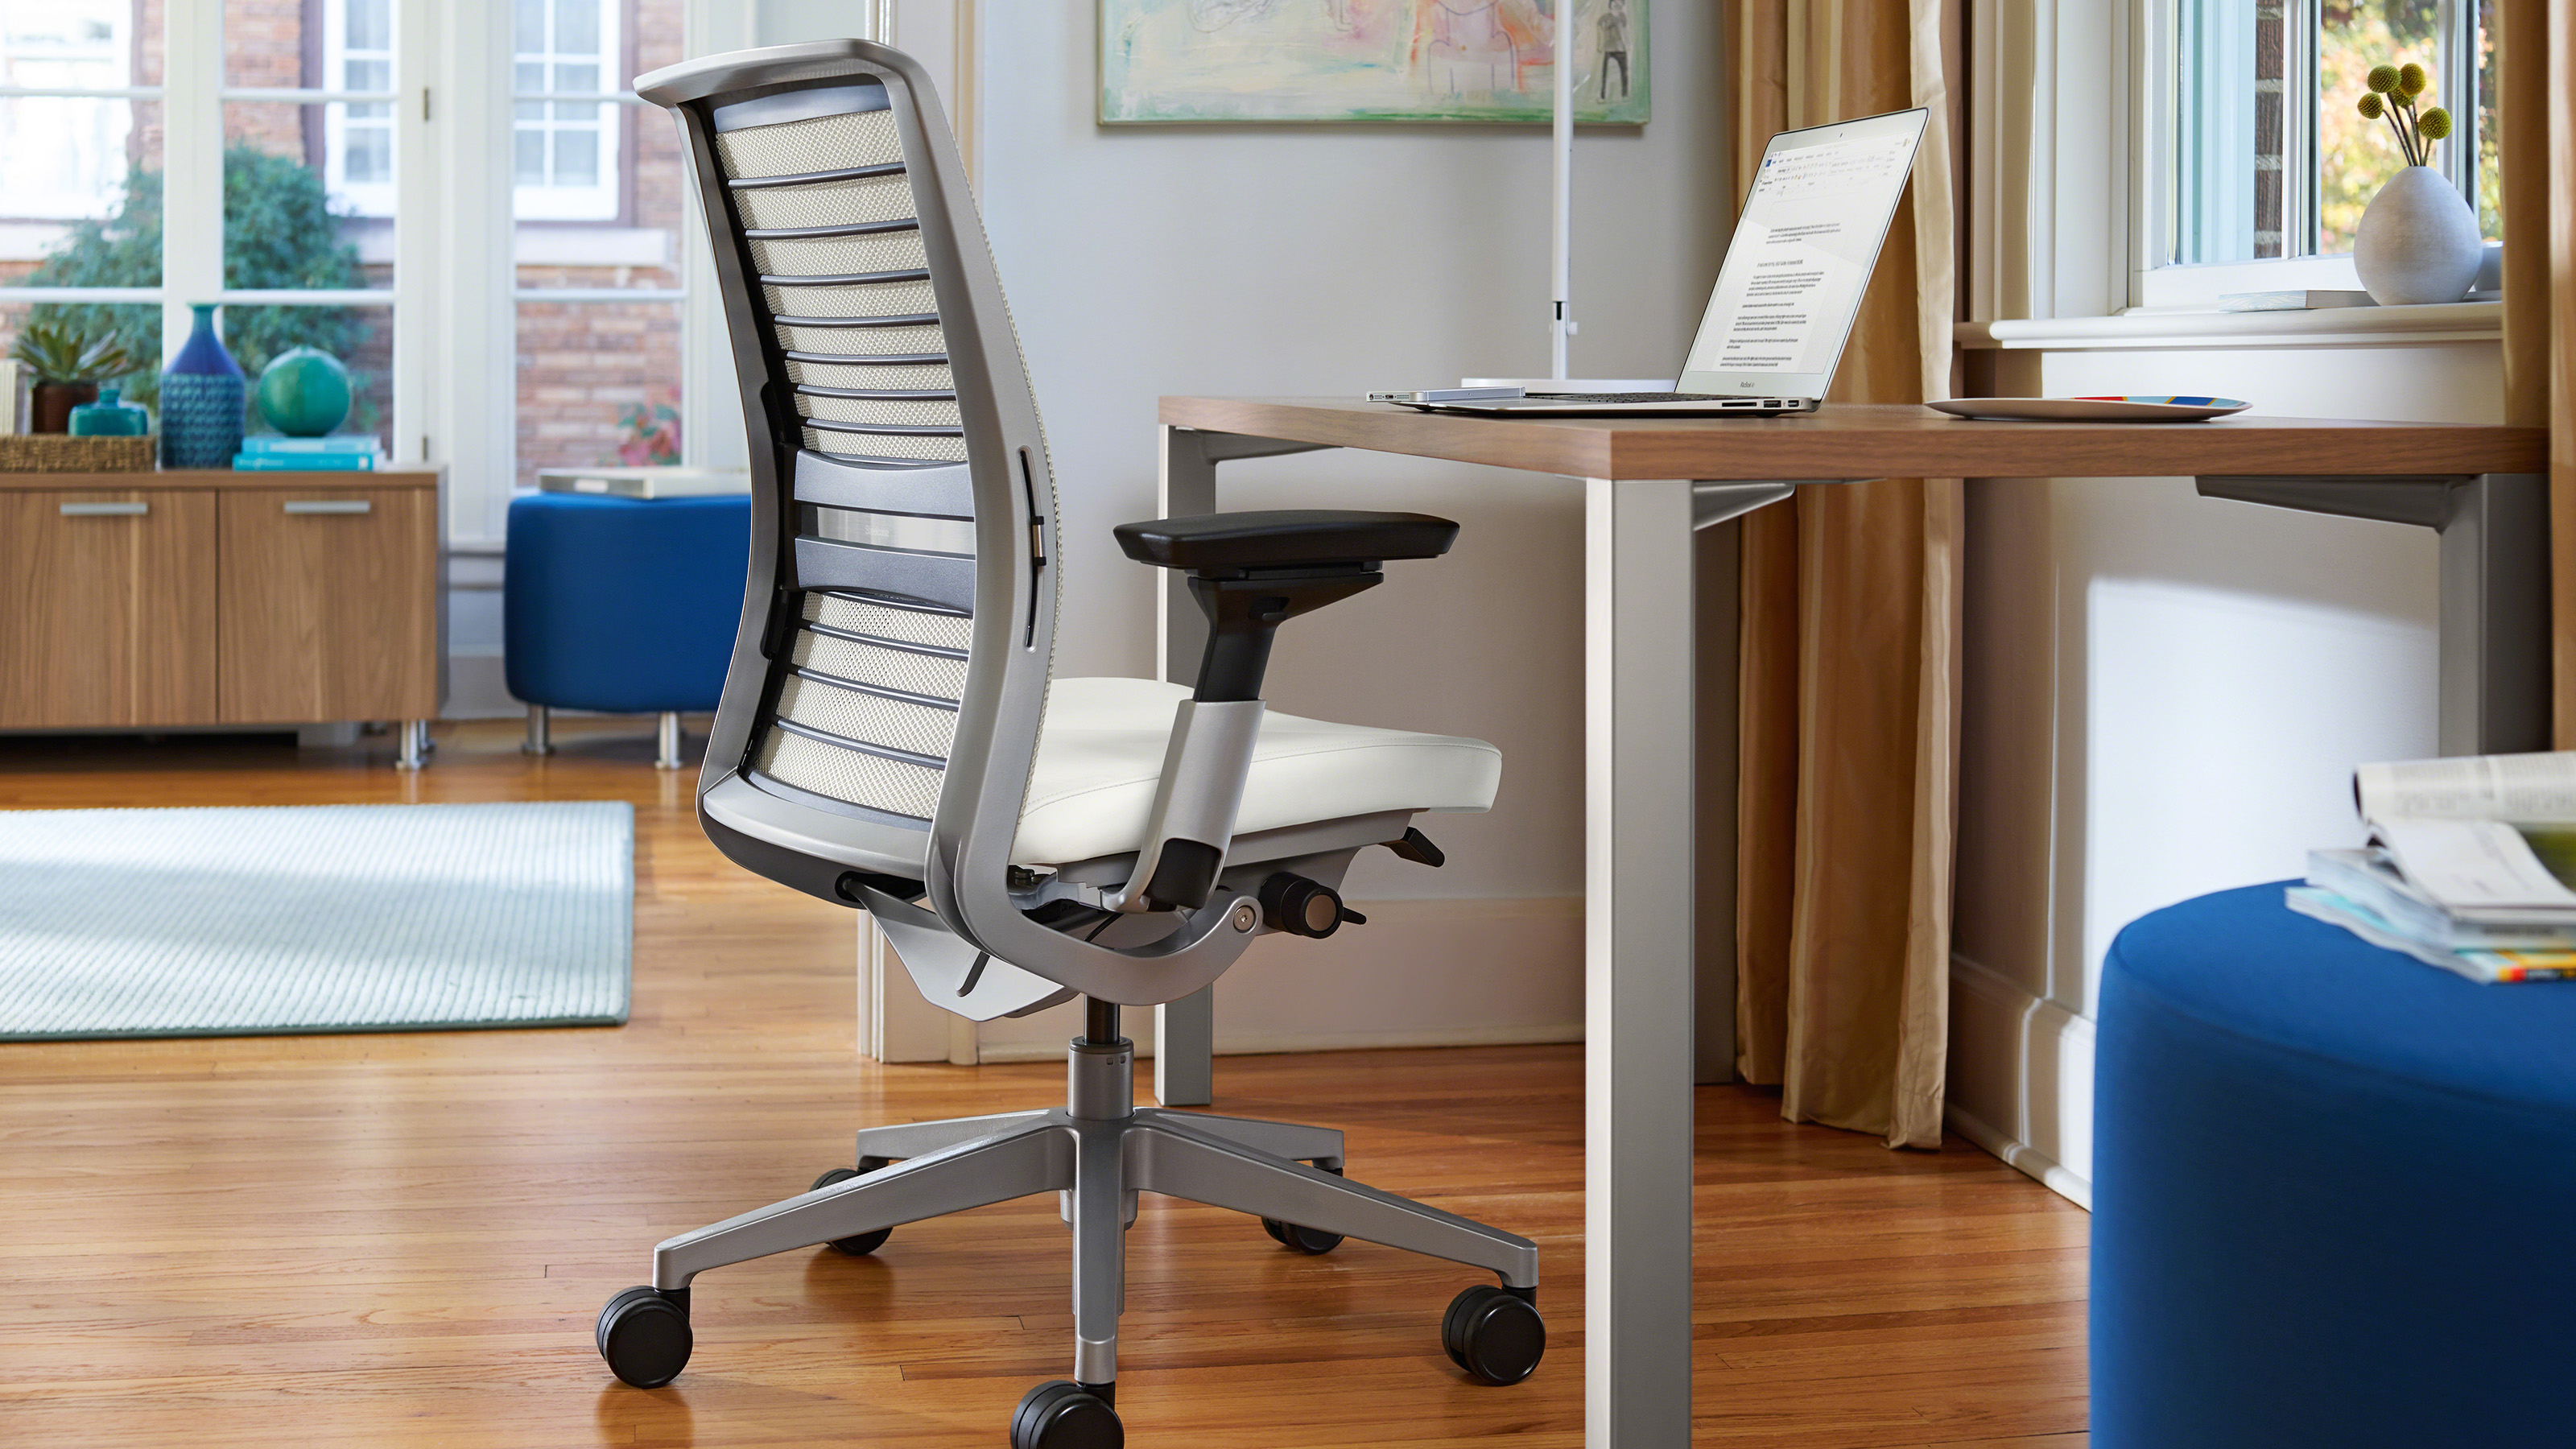 Think desk chair